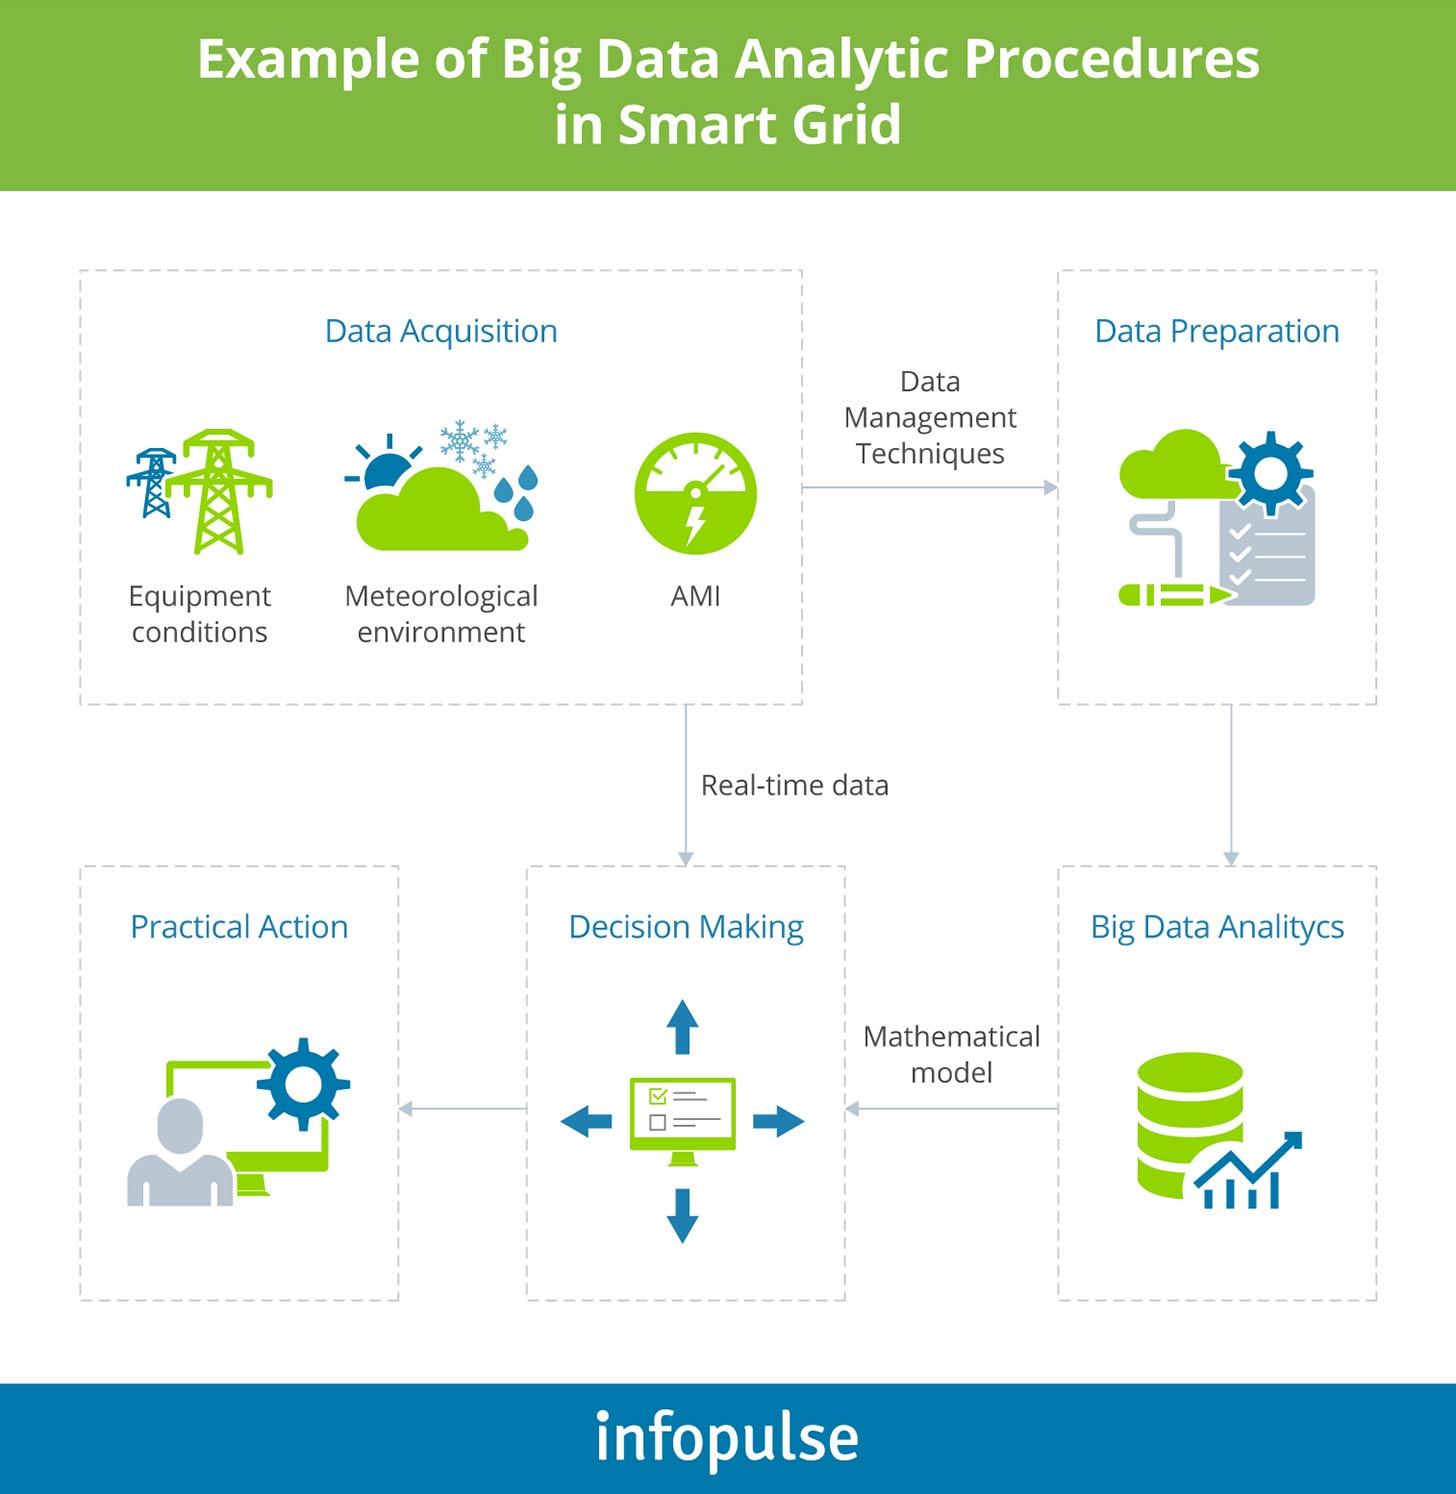 Example of big data analytics procedures in a smart grid - Infopulse - 3